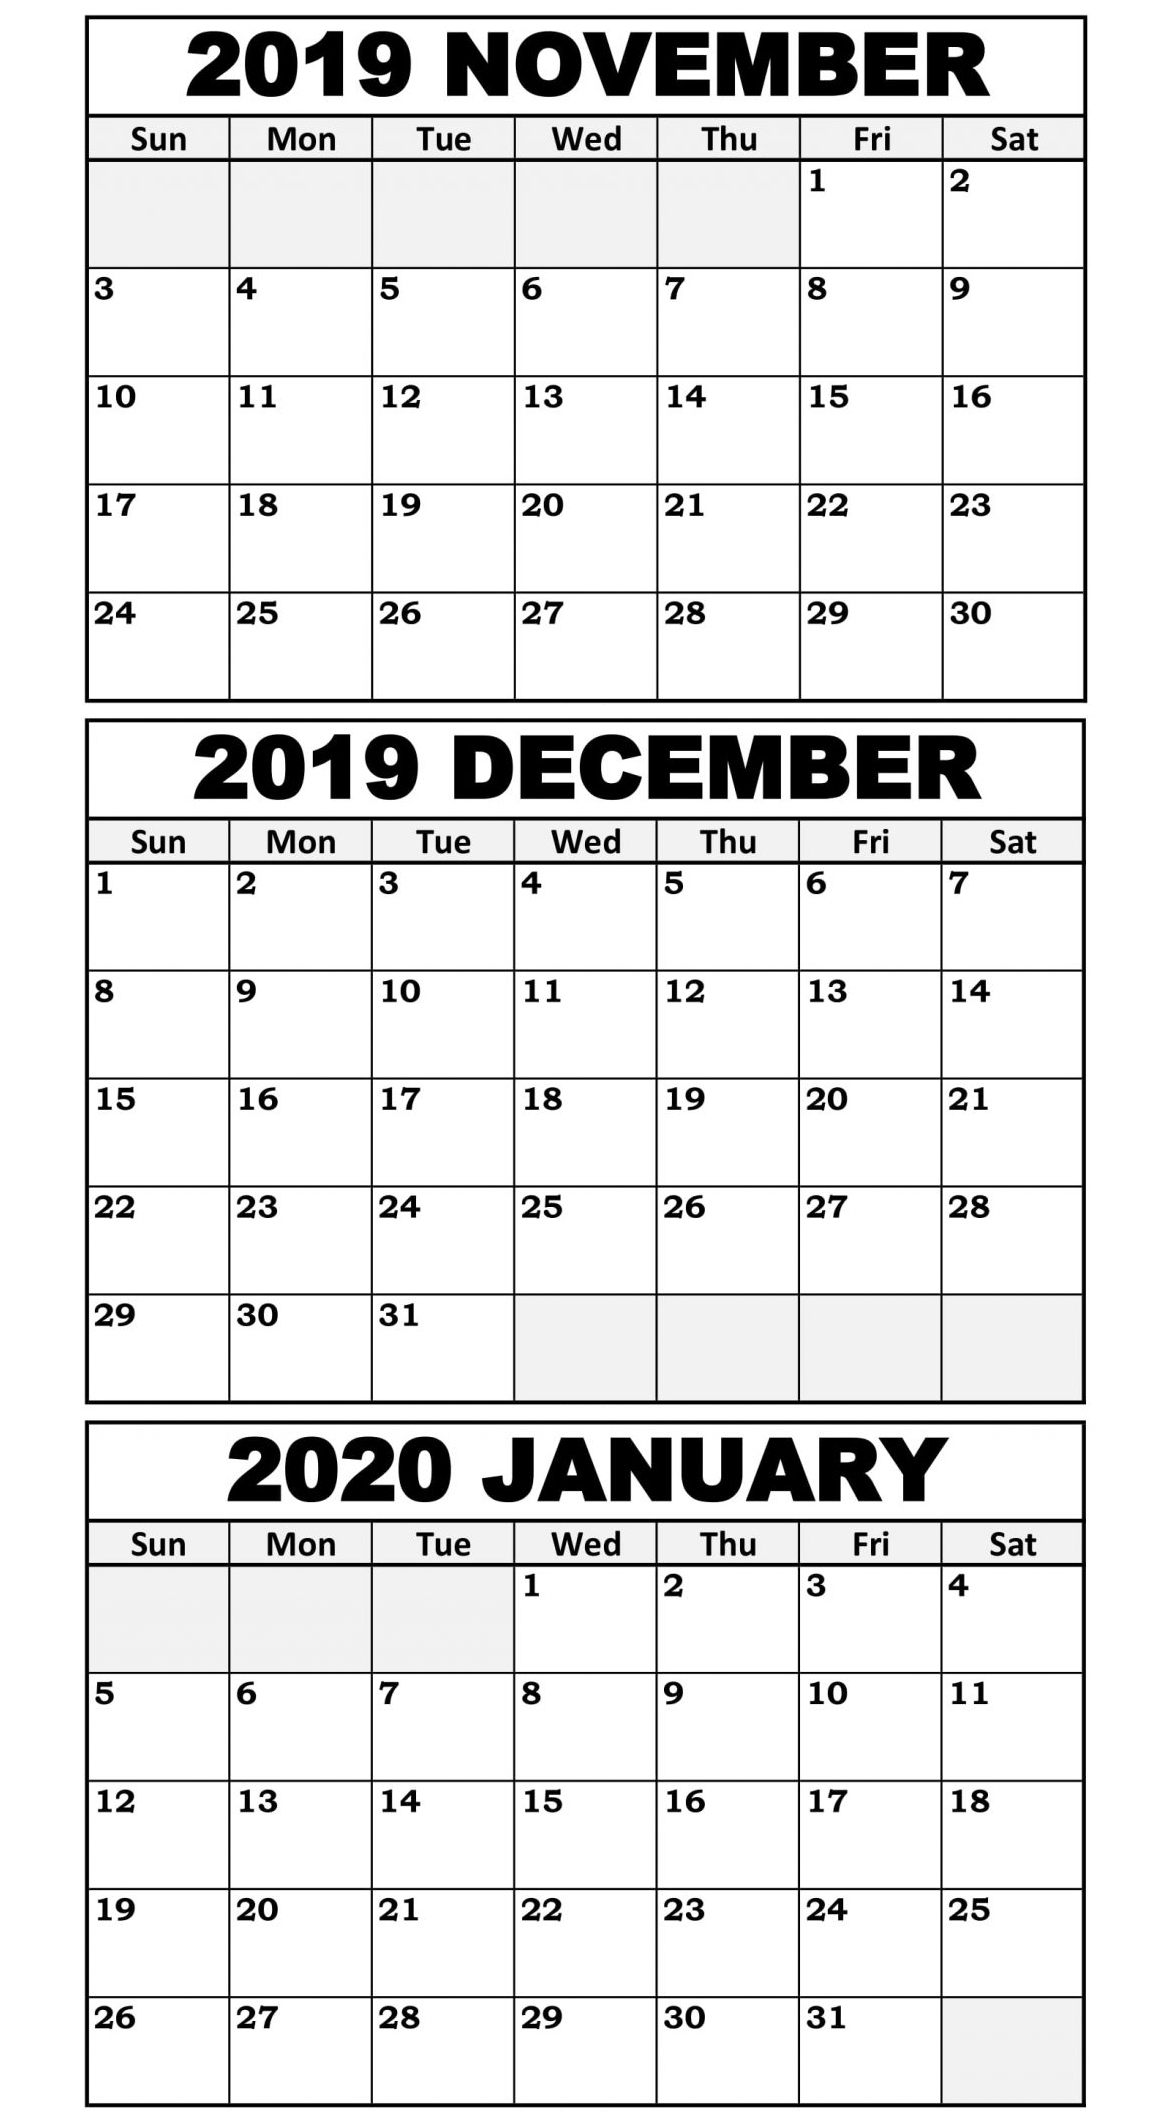 November 2019 To January 2020 Calendar Template - 2019